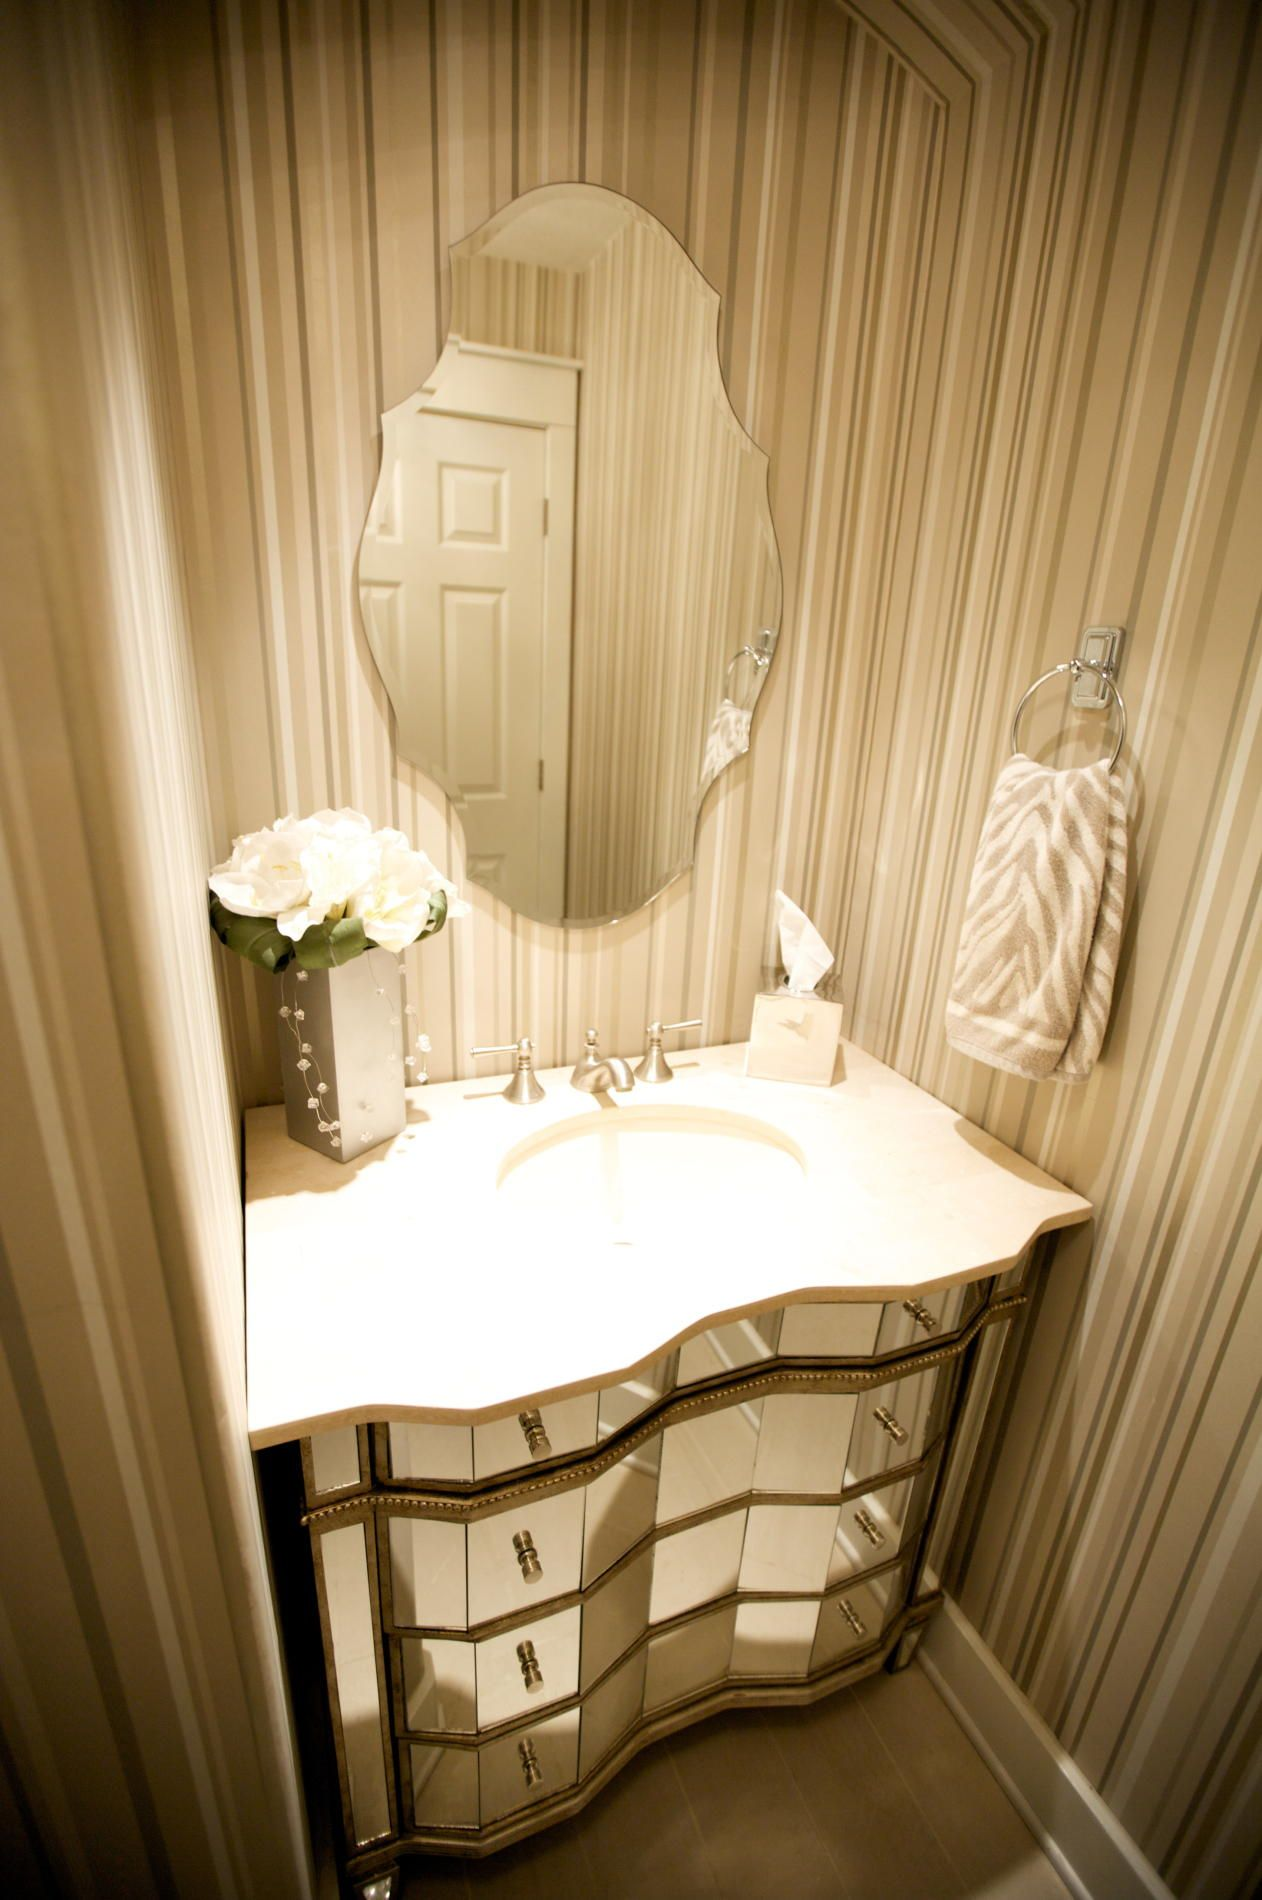 Bathroom Mirror Ideas (DIY) For A Small Bathroom | Powder room ...